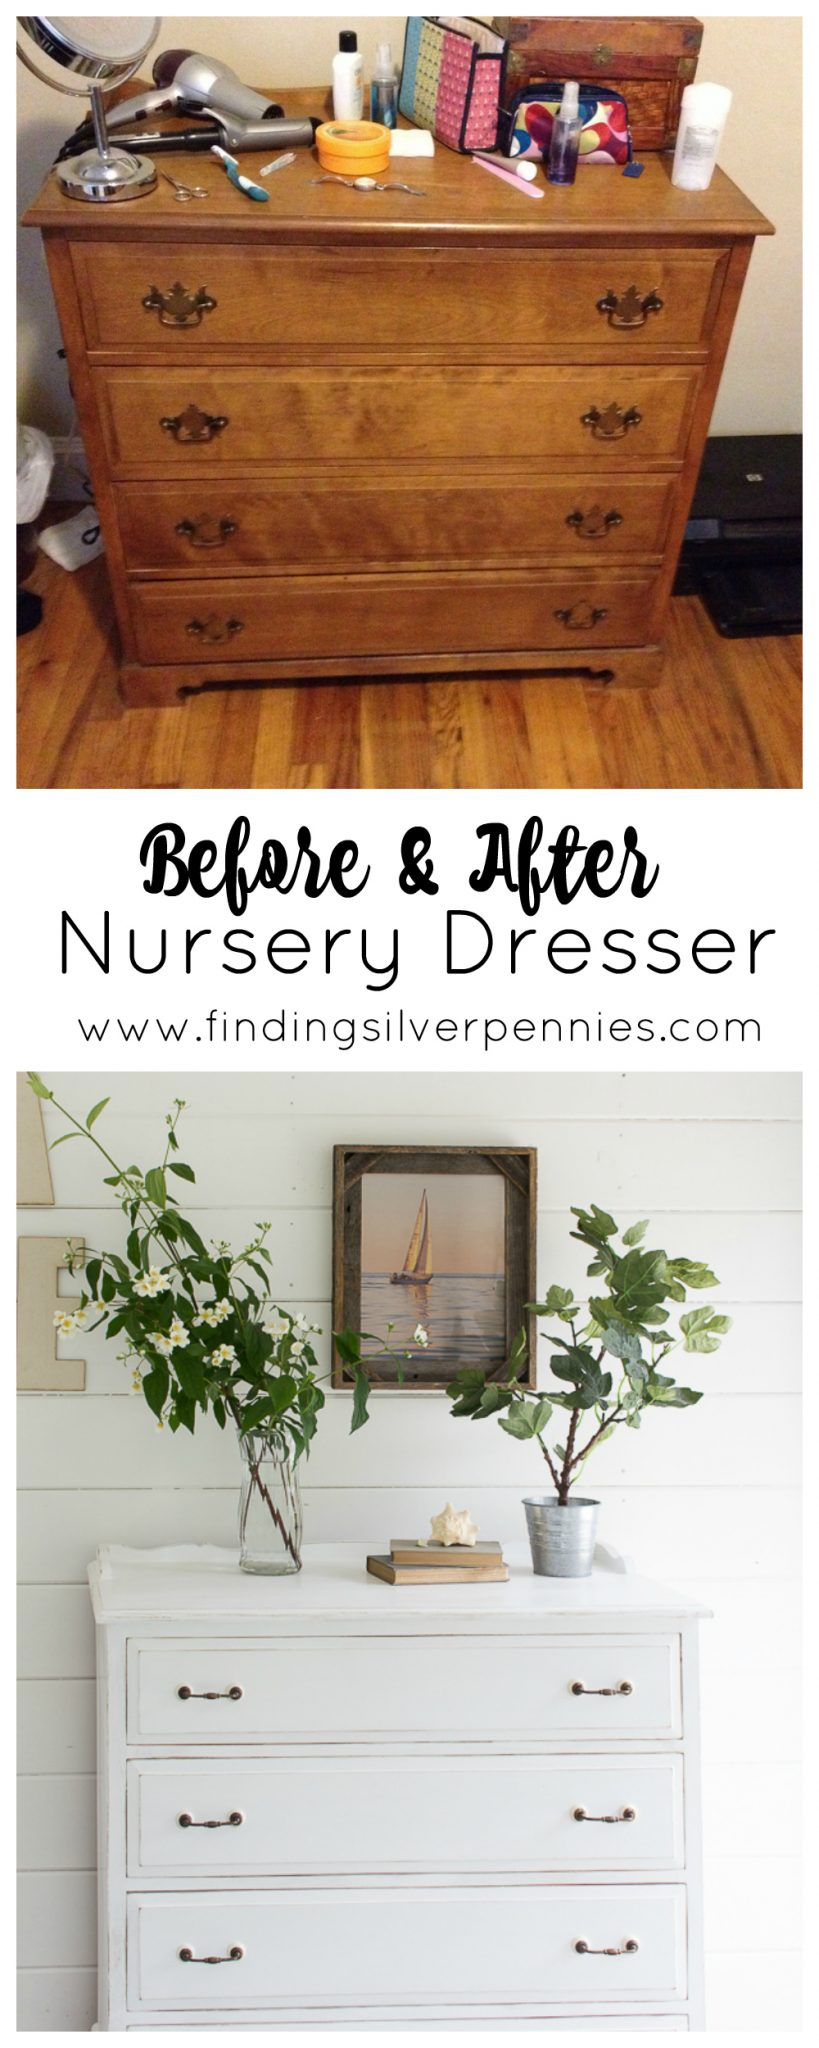 Before & After - Nursery Dresser - Upcycling with Chalk Paint I Finding Silver Pennies